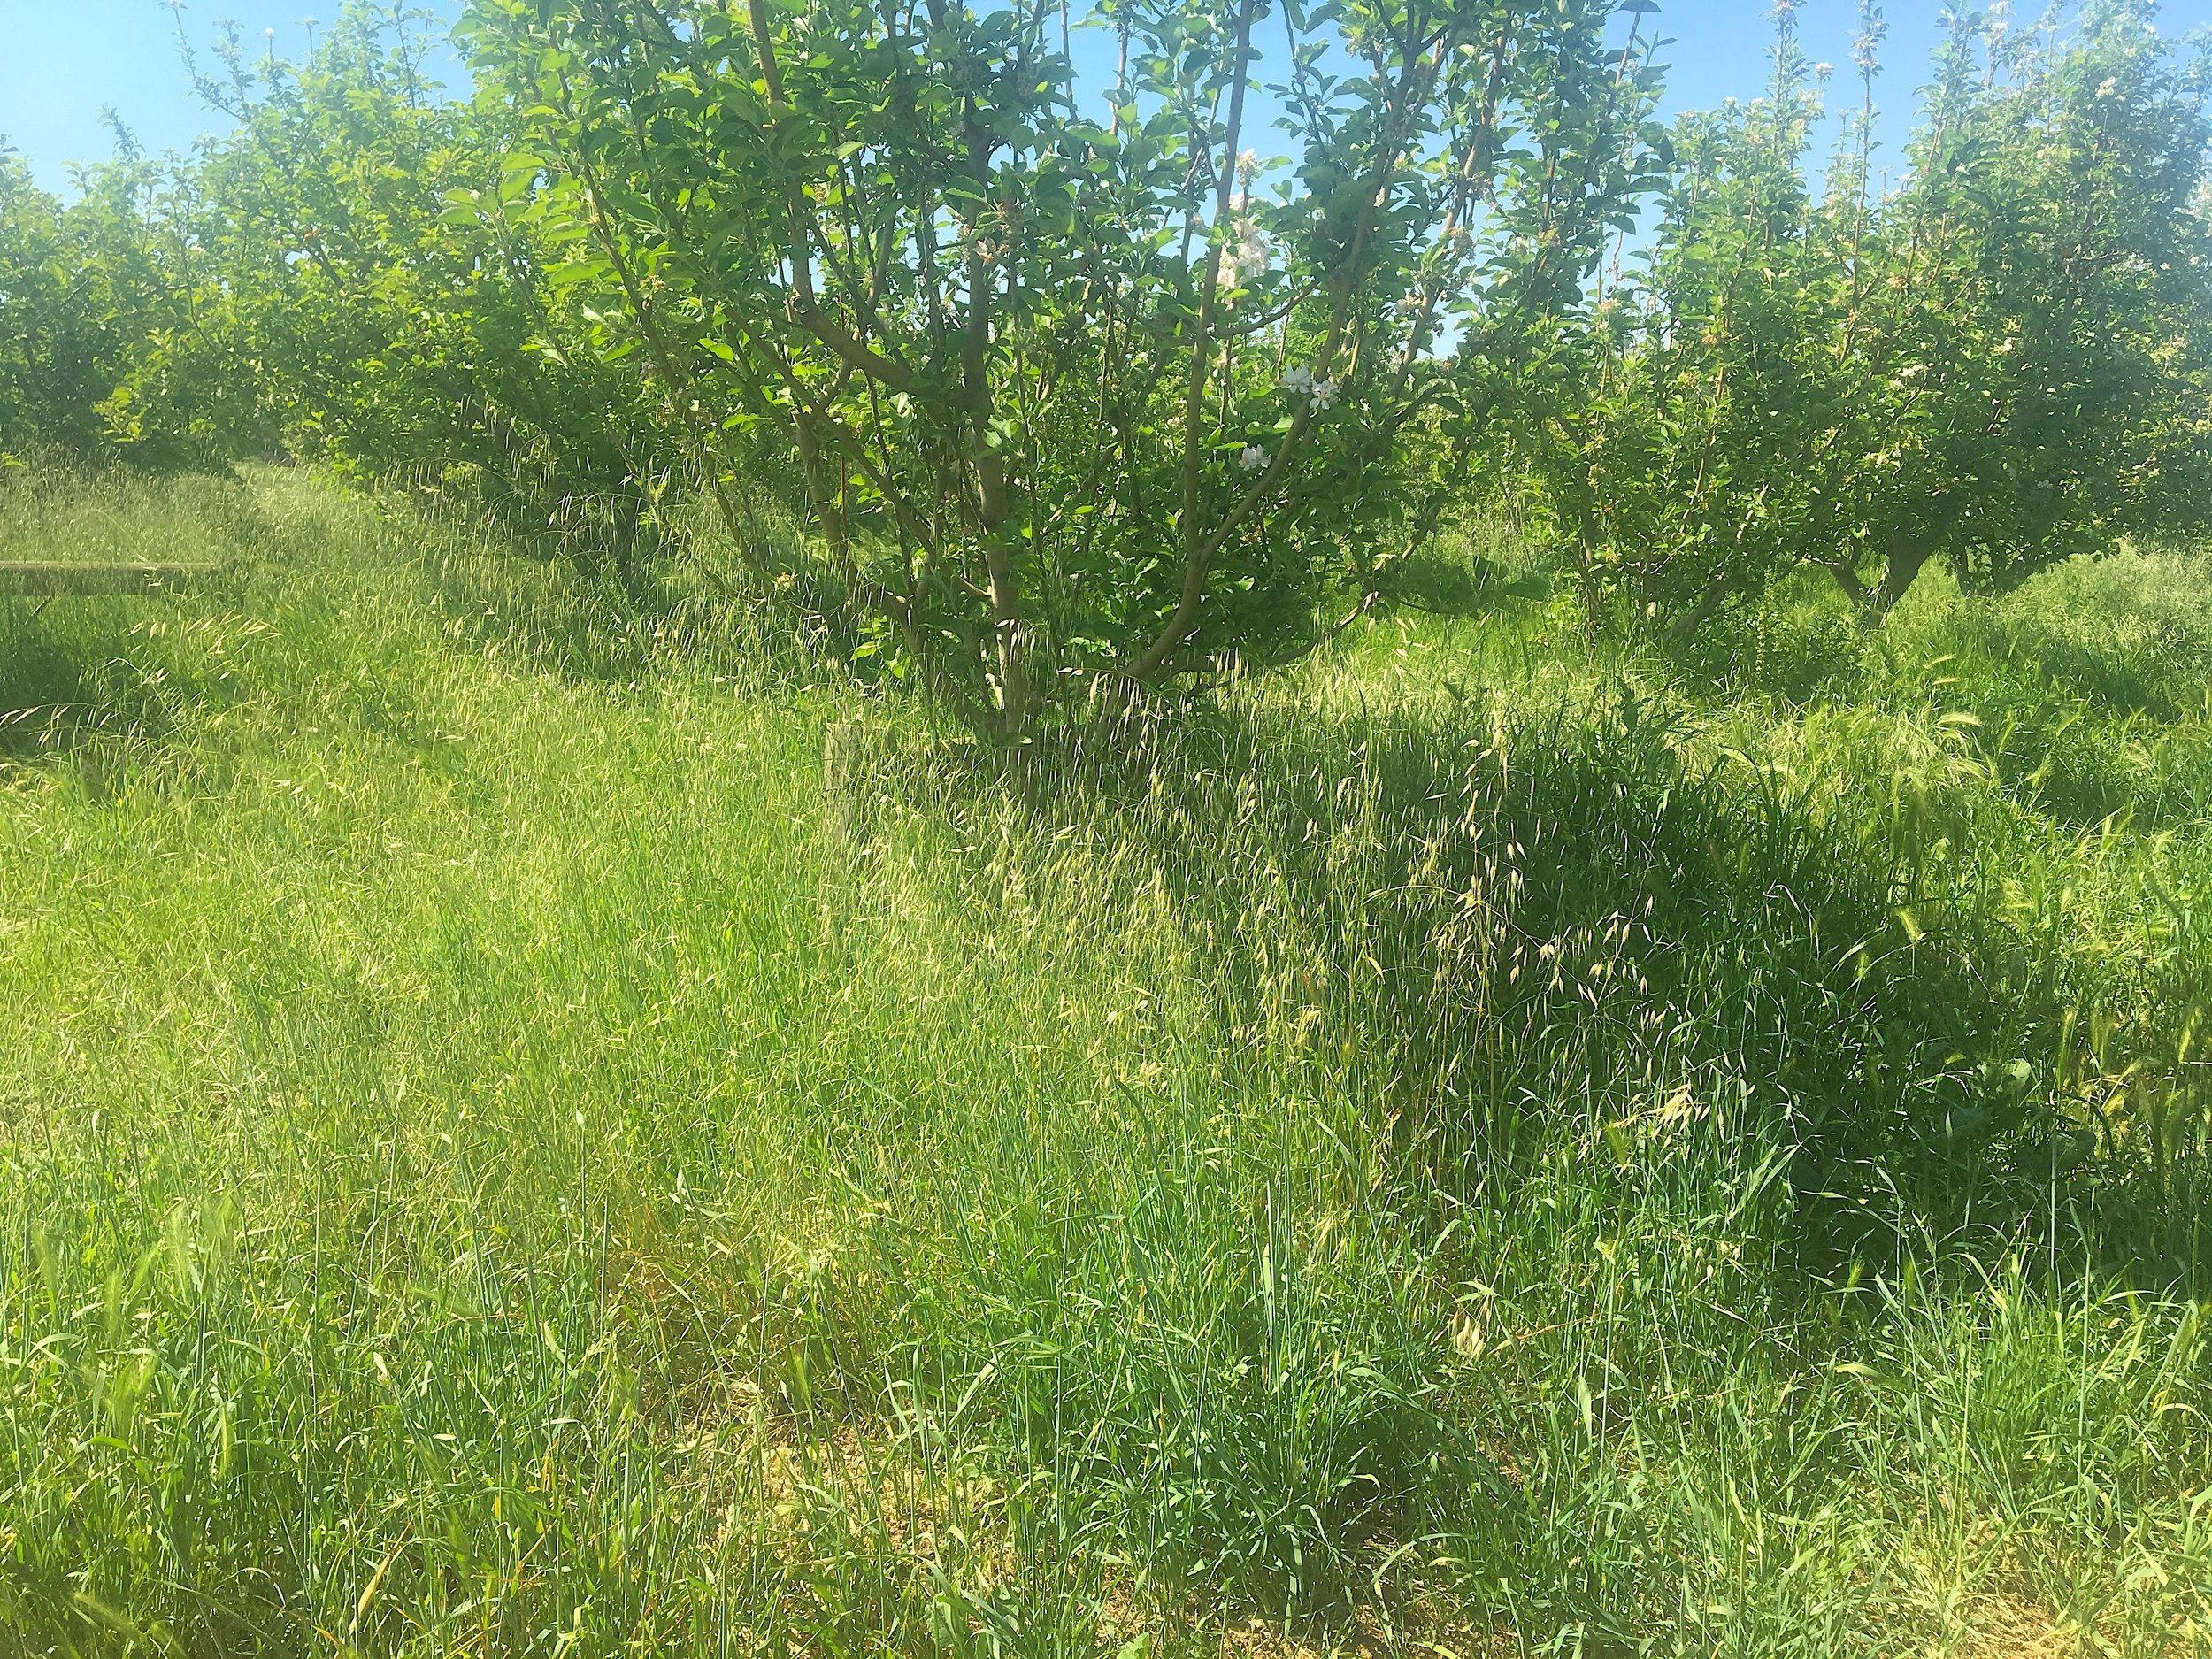 Tall grasses on the orchard floor